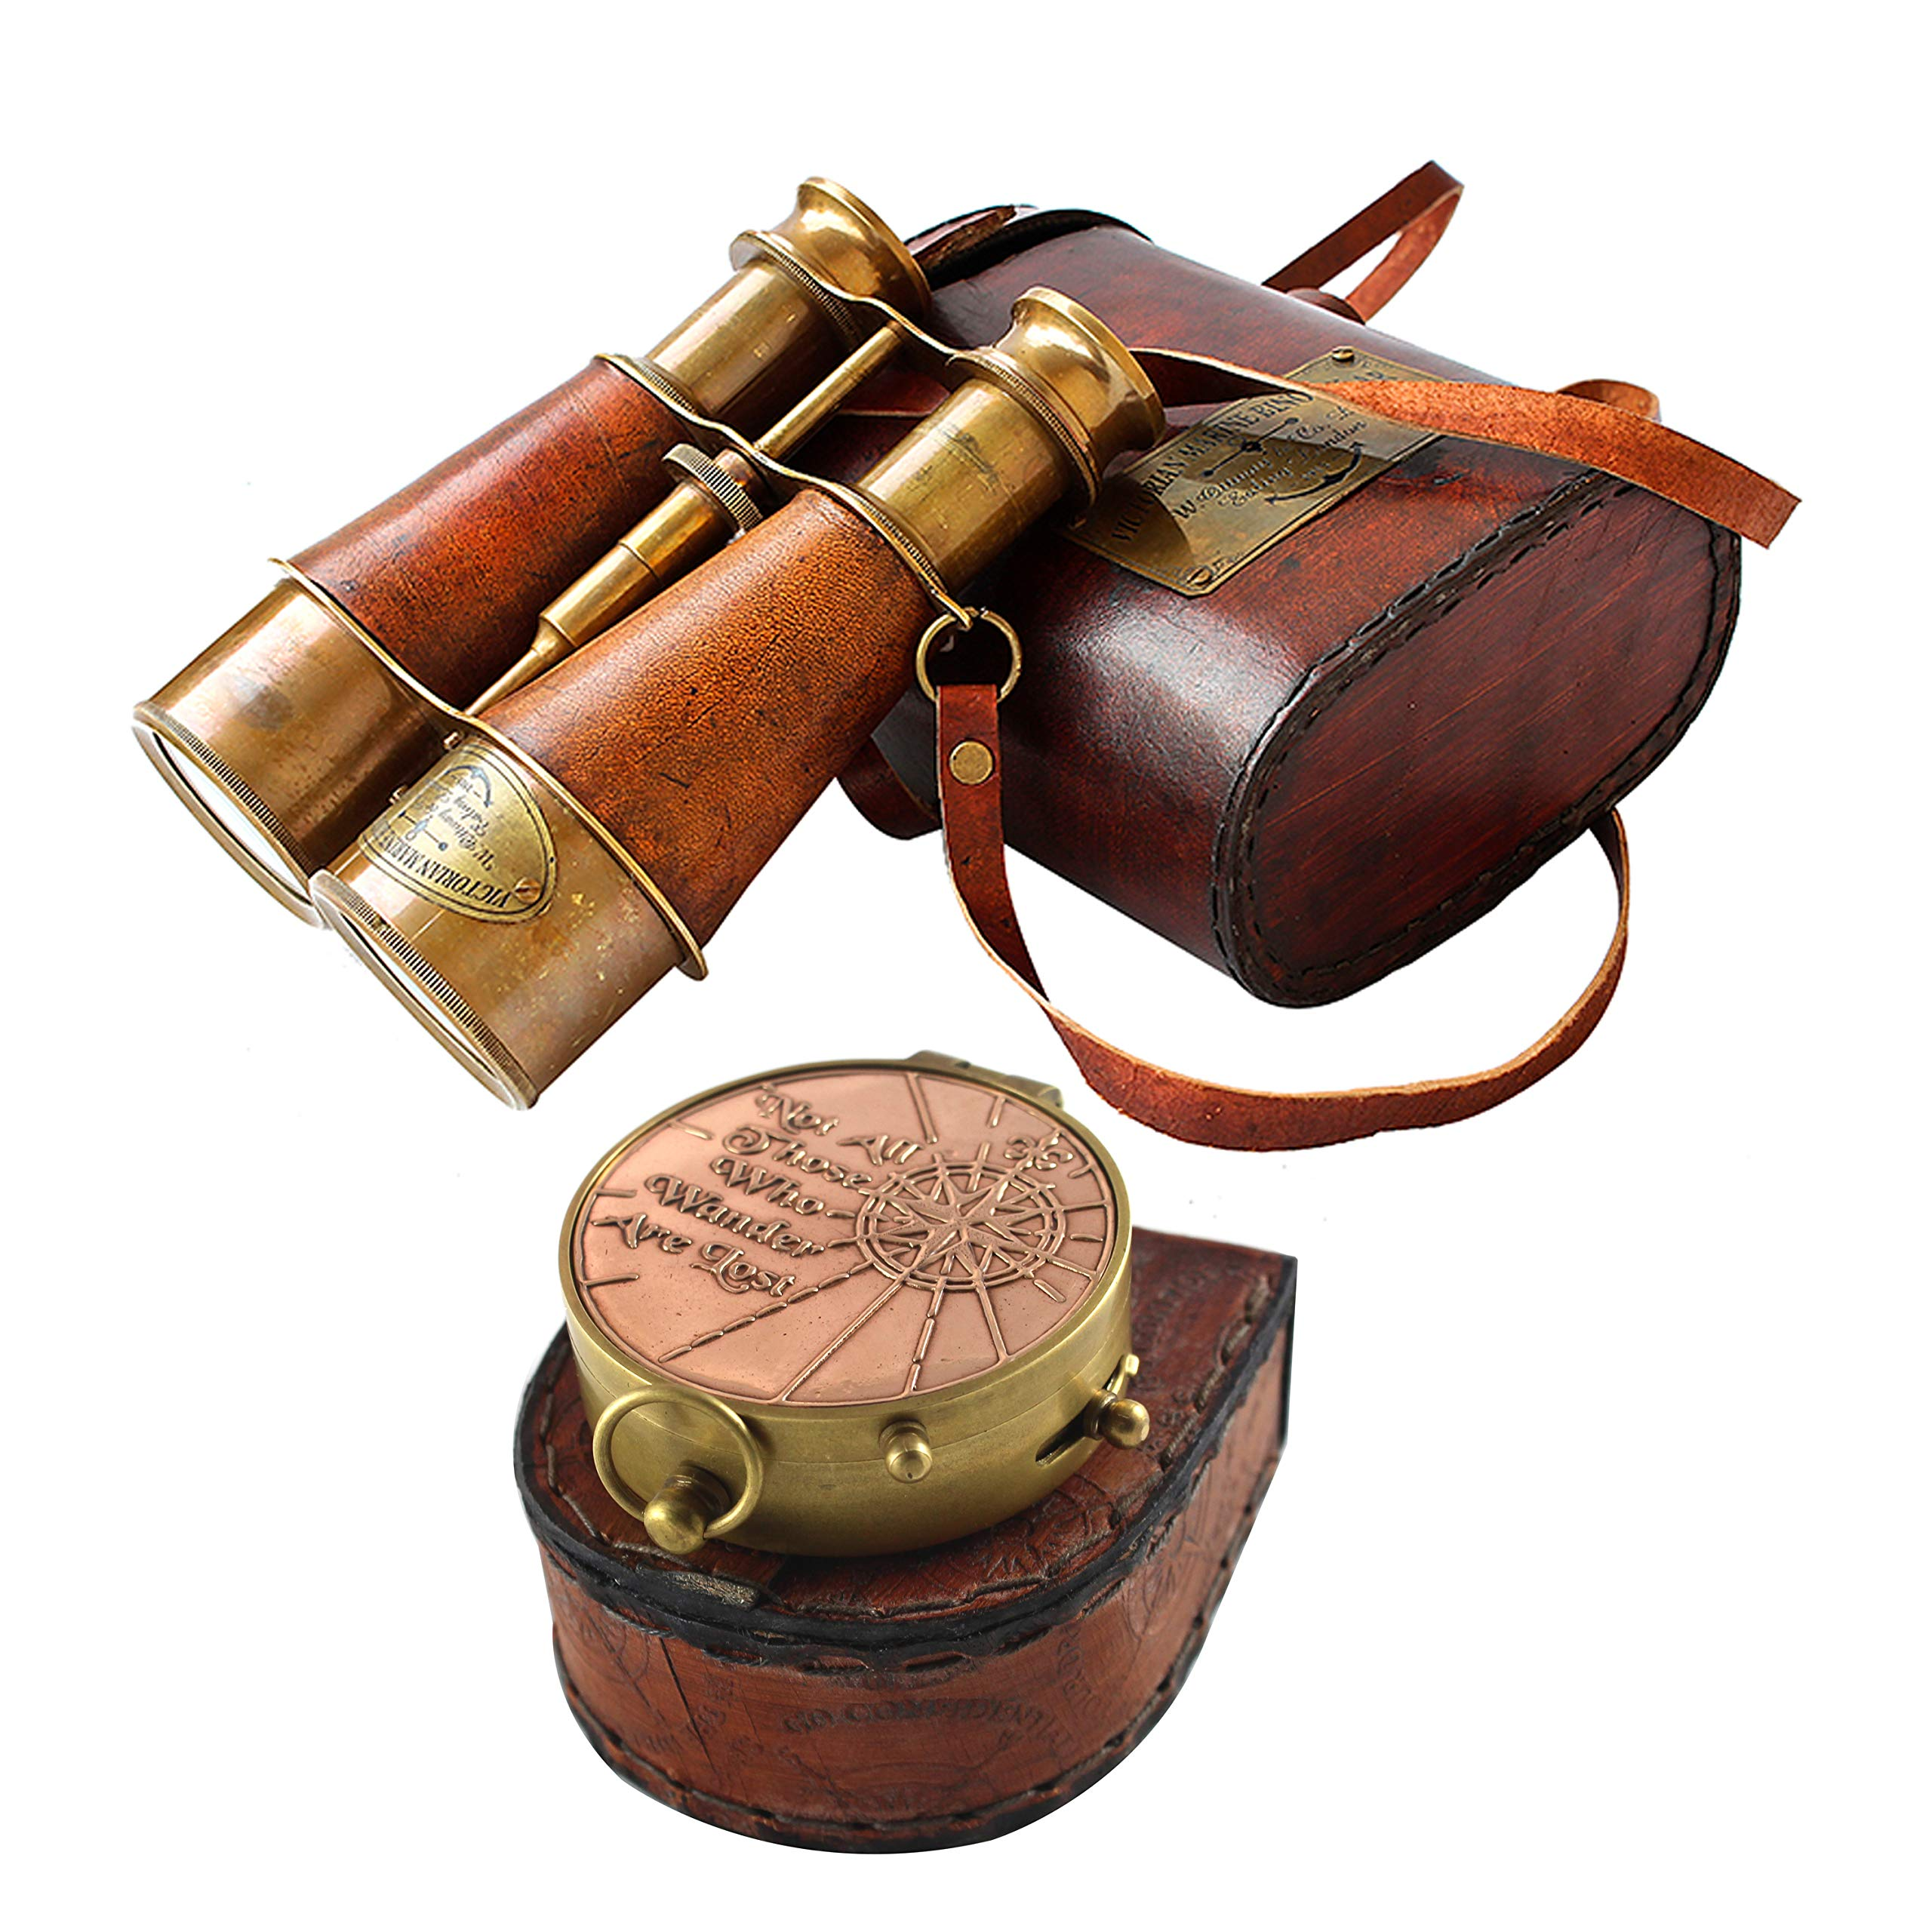 collectiblesBuy Nautical Victorian Marine Binocular Leather Case with Brass Copper Qoute Compass by collectiblesBuy